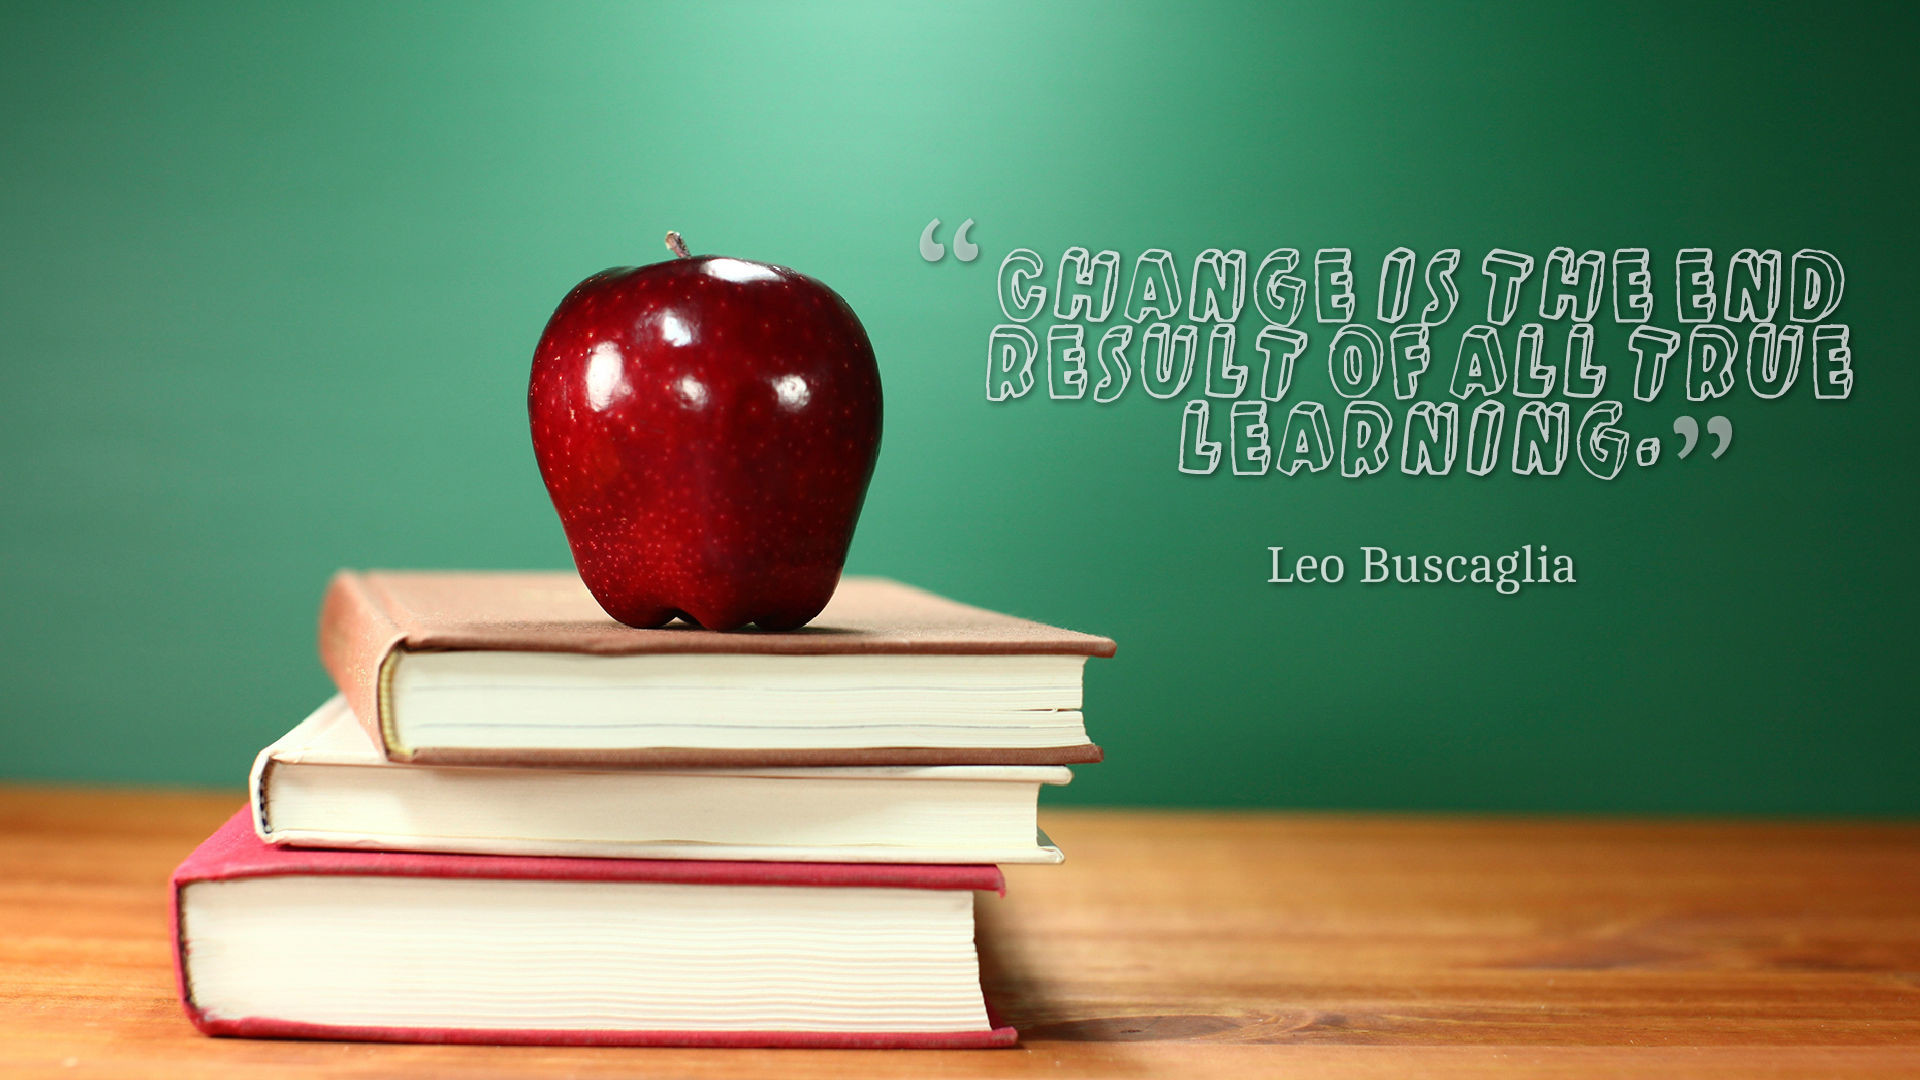 Learning Quotes Wallpaper 13256   Data Src New Learning - Shiny Apple For The Teacher - HD Wallpaper